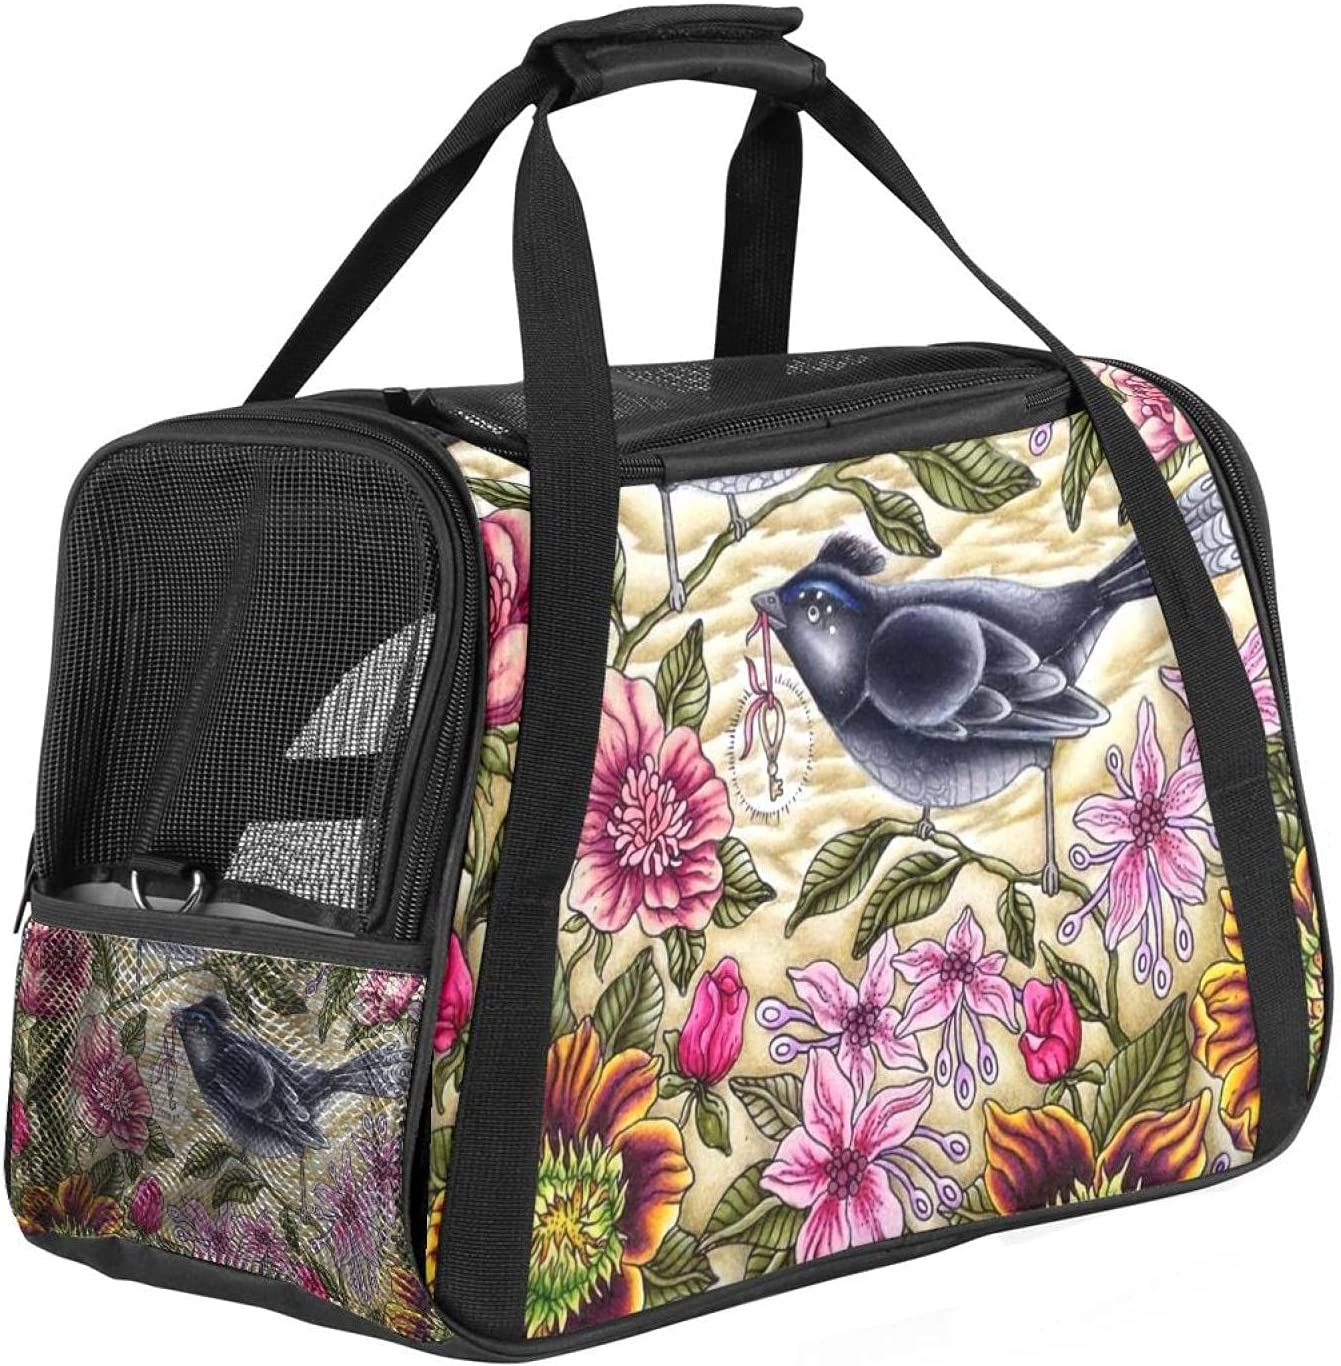 SHENGYIN Travel Cat Carriers Airline Approved S Colorado Springs Mall Store Pet Carrier Soft